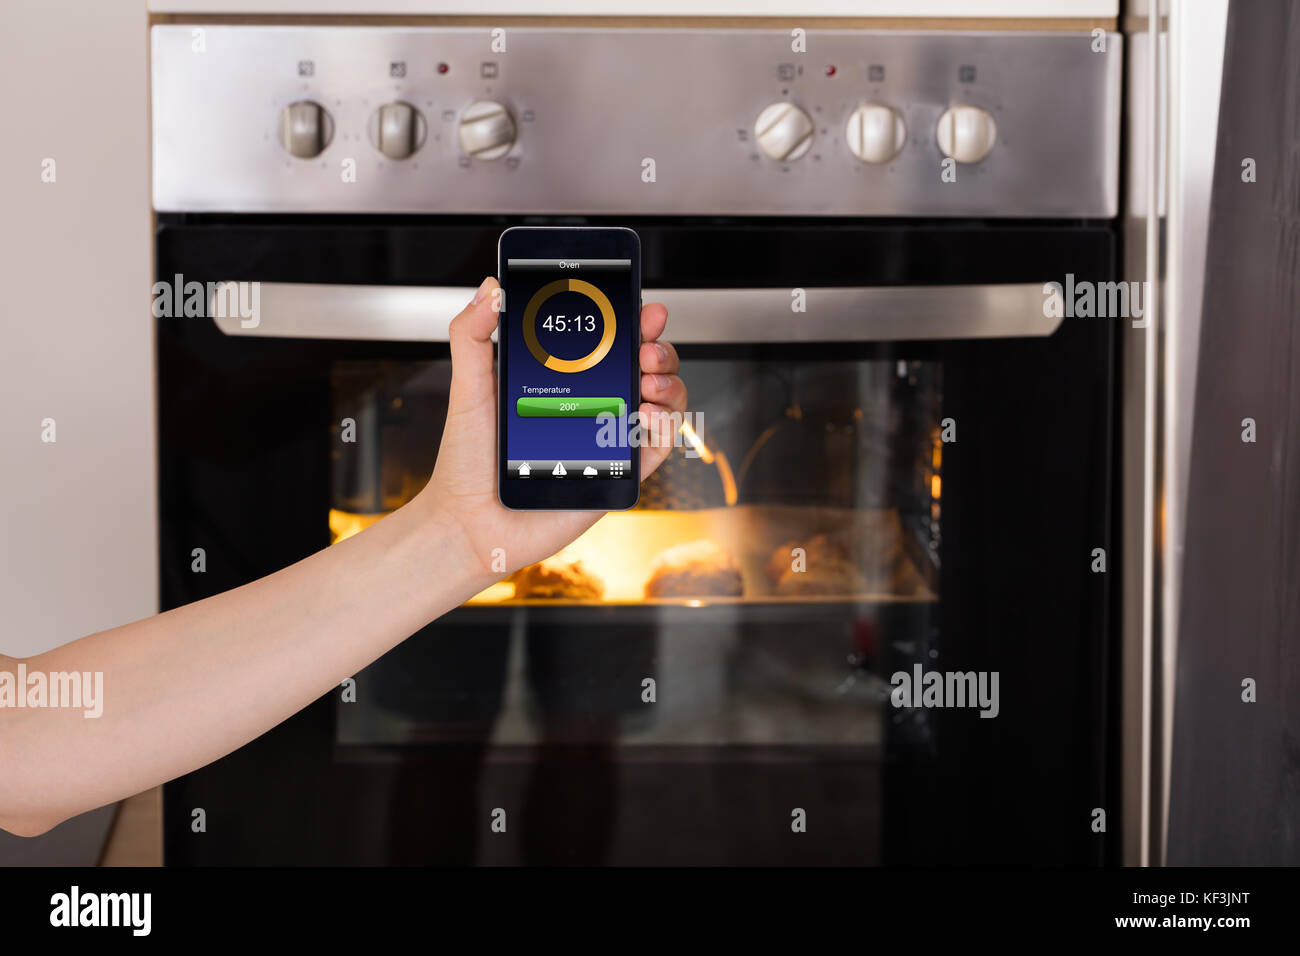 Close-up Of Person Hands Operating Oven Appliance With Mobile Phone App - Stock Image